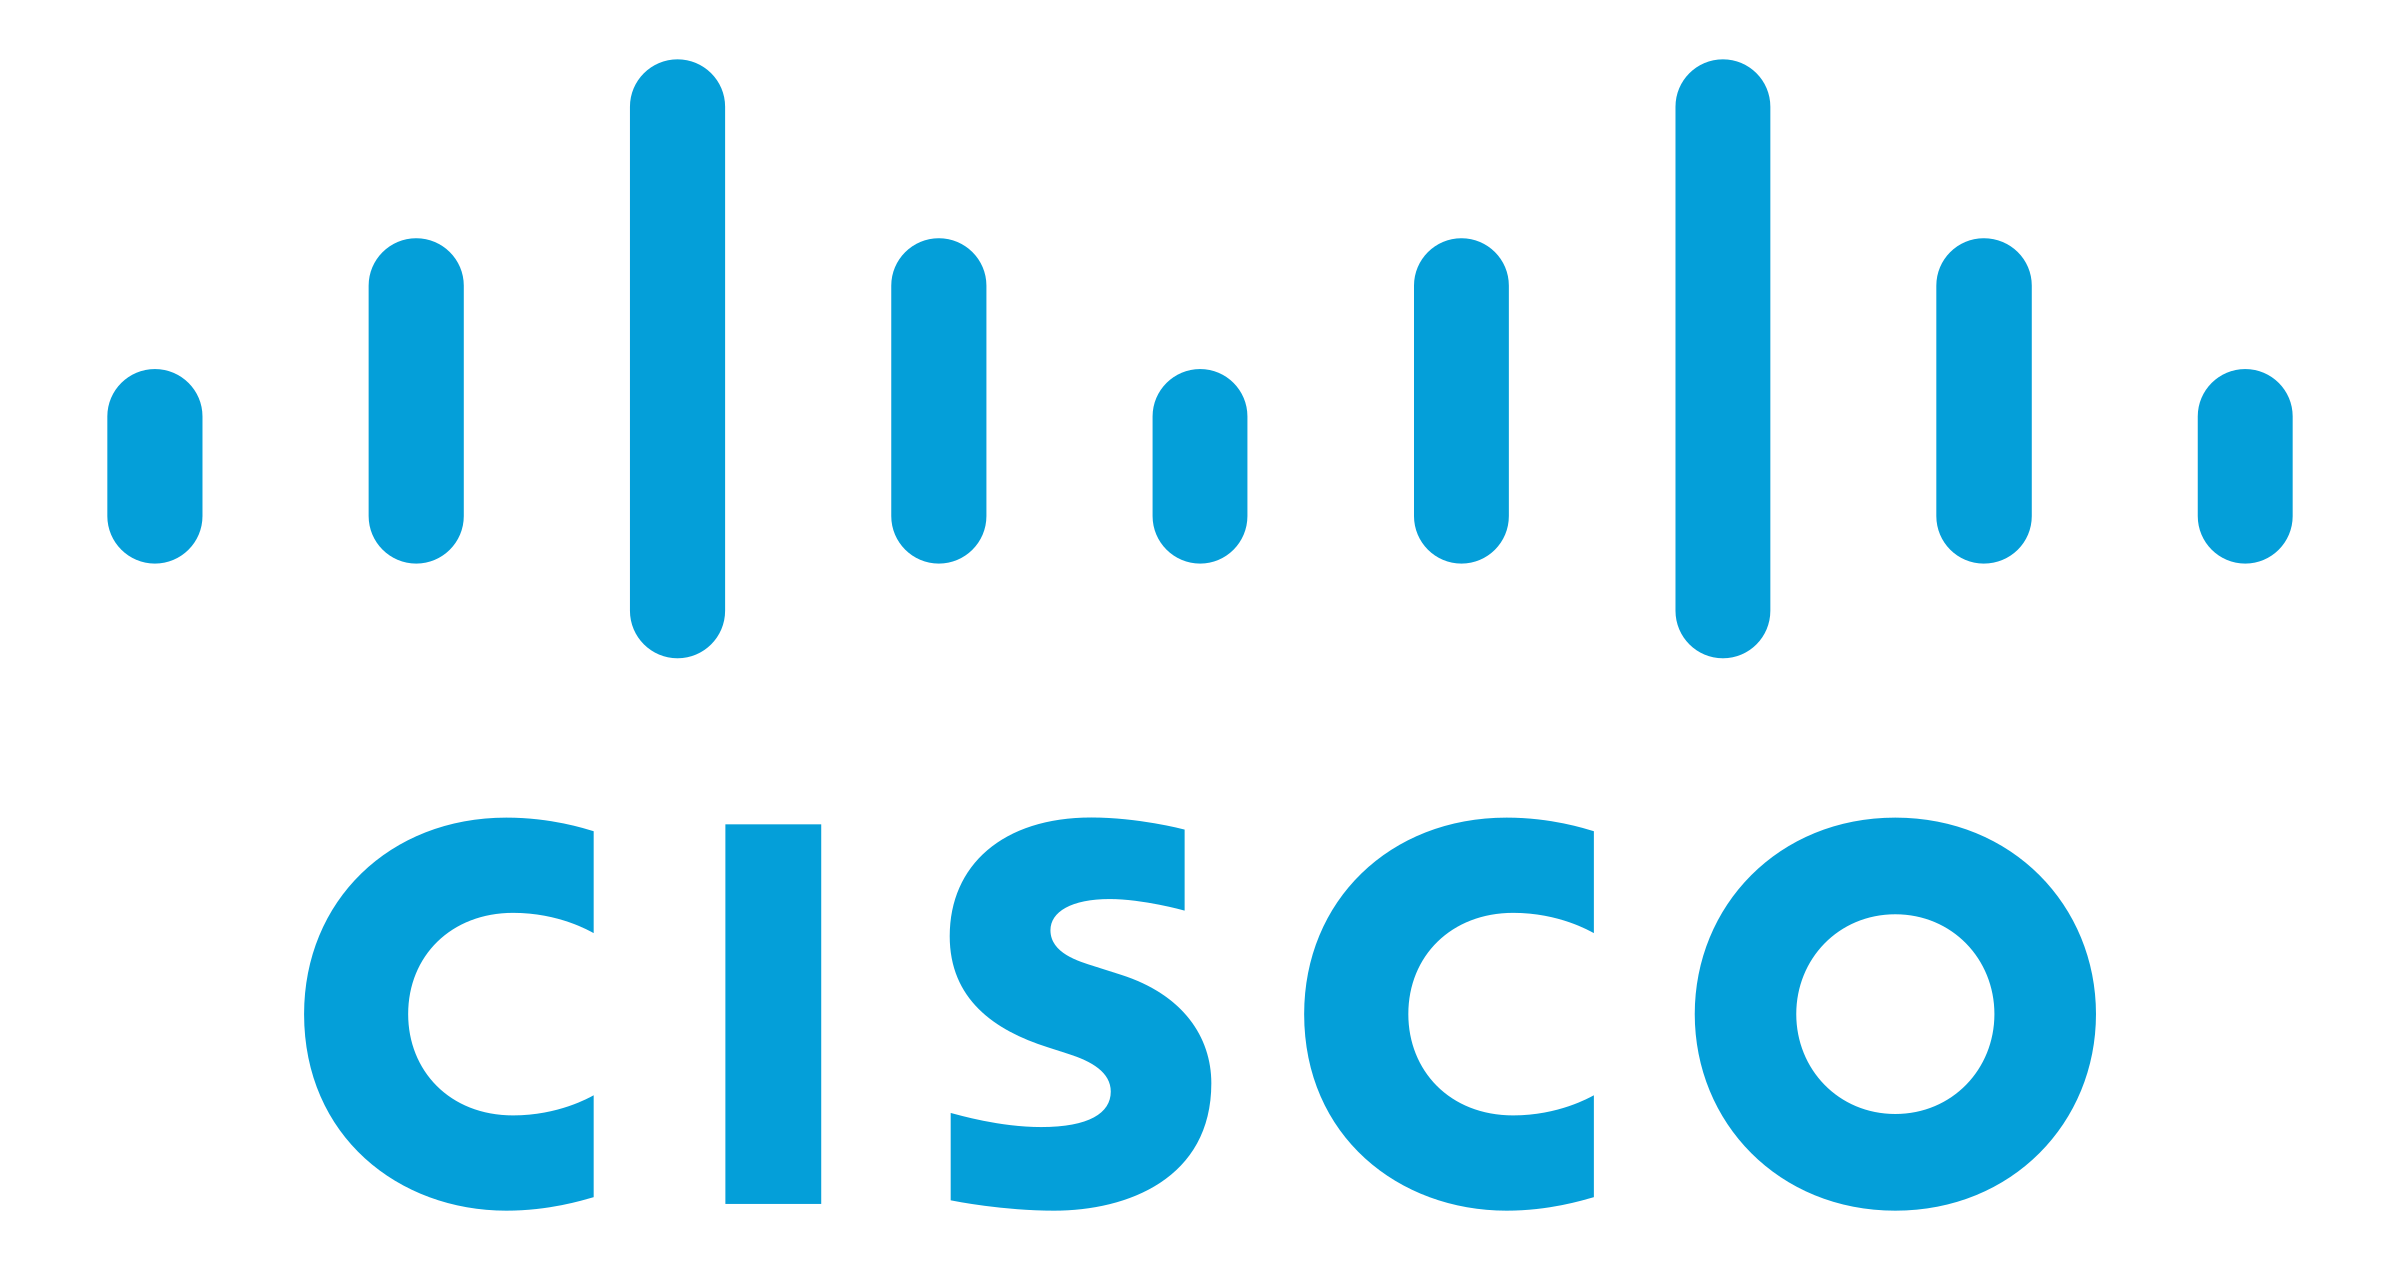 Cisco logo facts